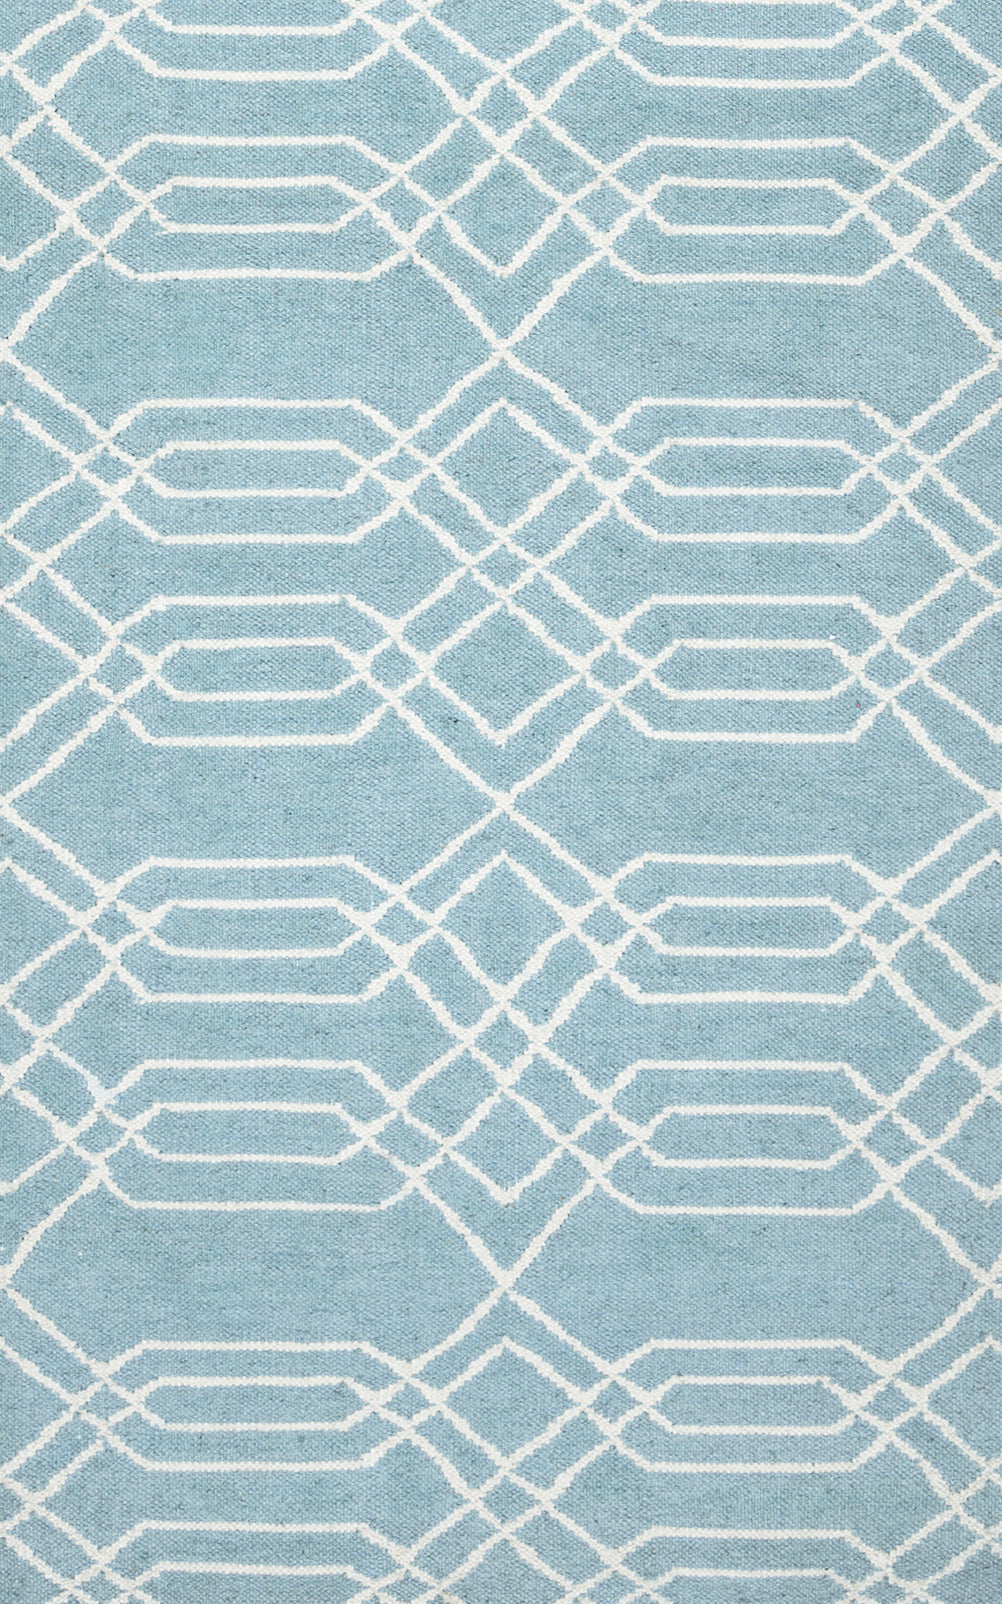 Rizzy Home Swing SG8159 Blue Trellis Area Rug